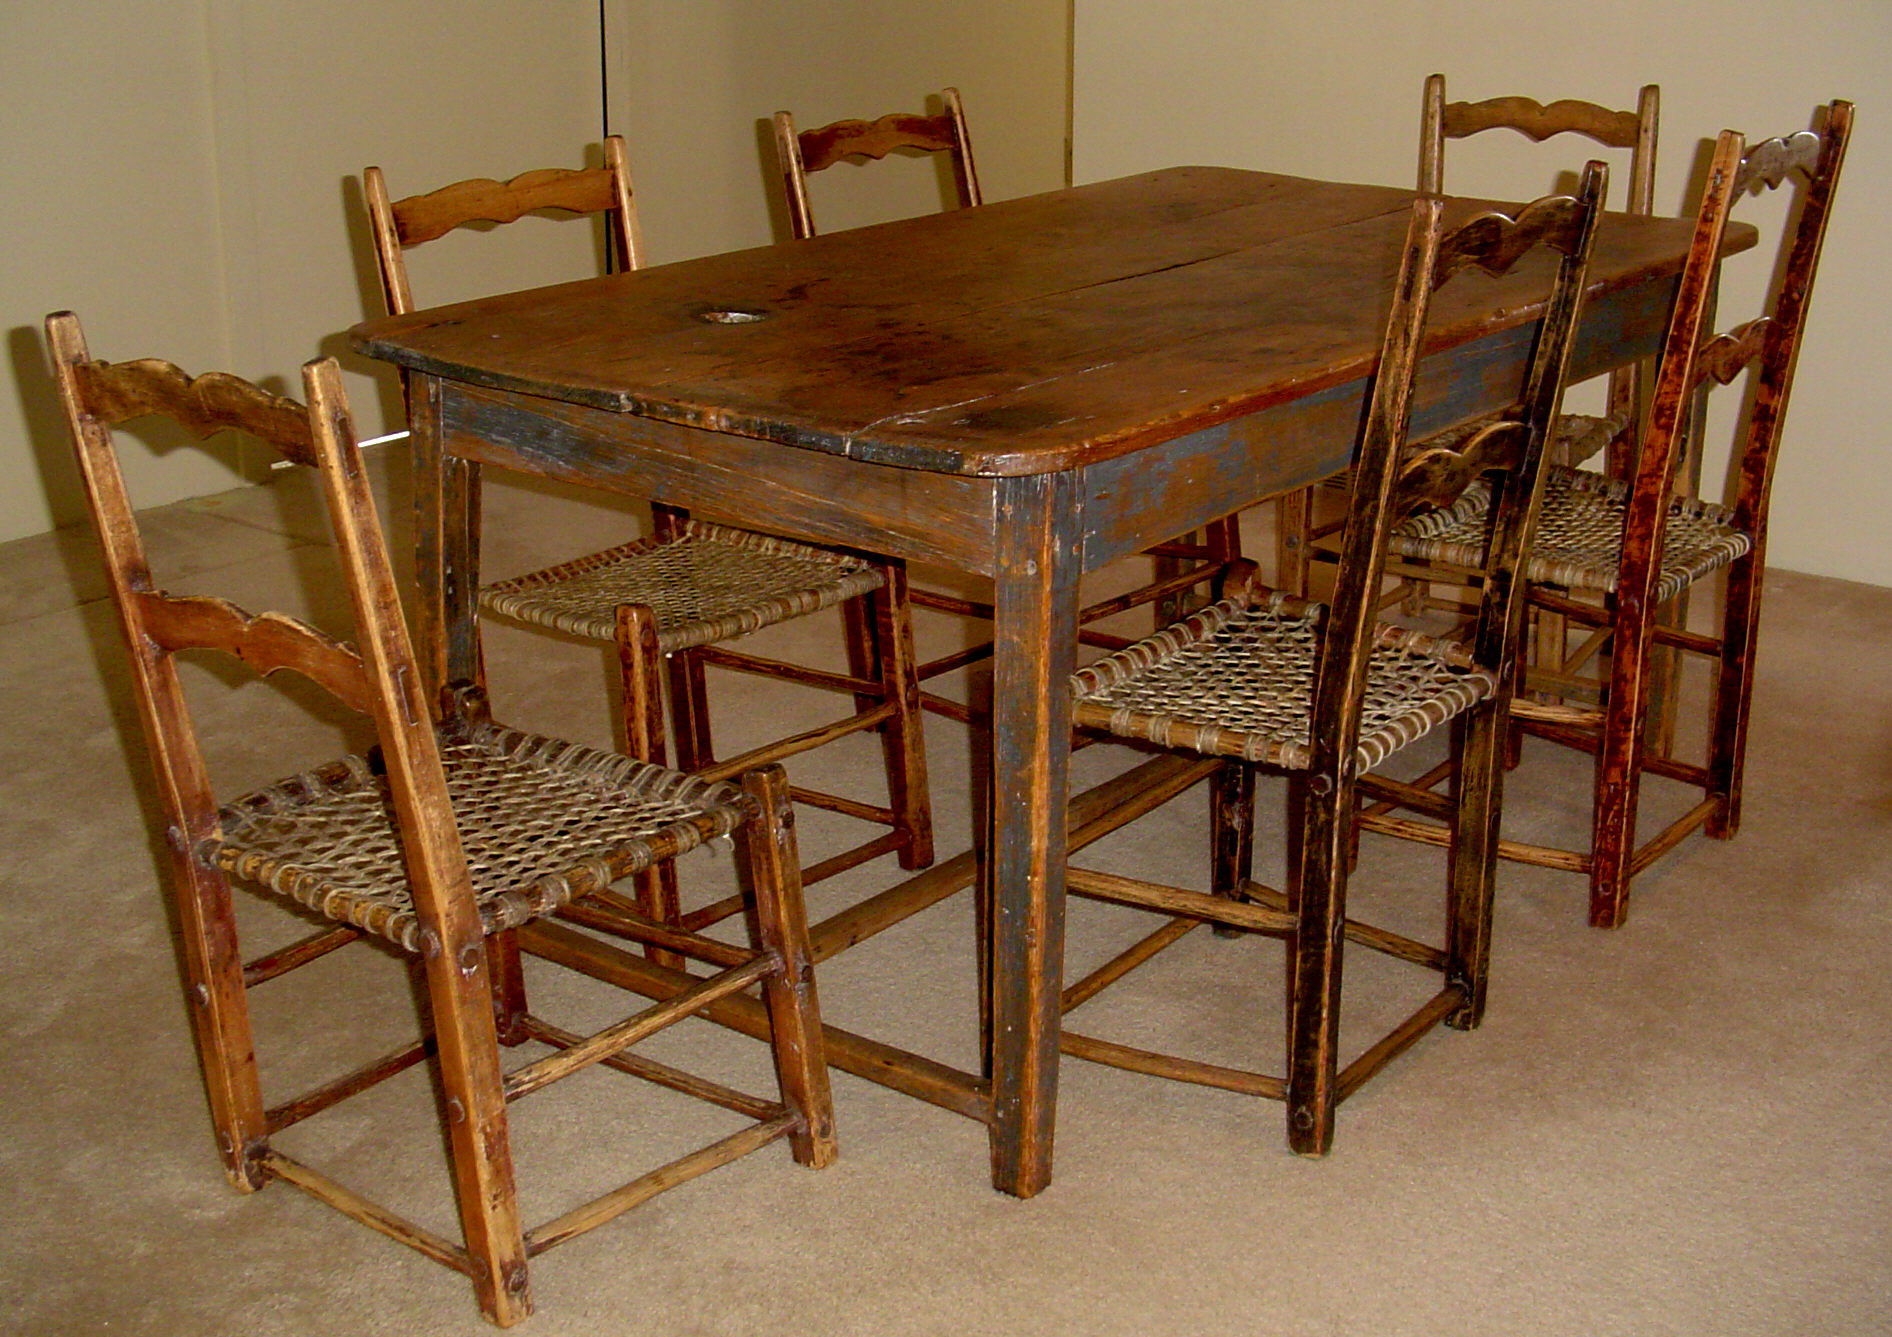 Primitive kitchen set canadian pine wood furniture for sale classifieds Wooden furniture canada